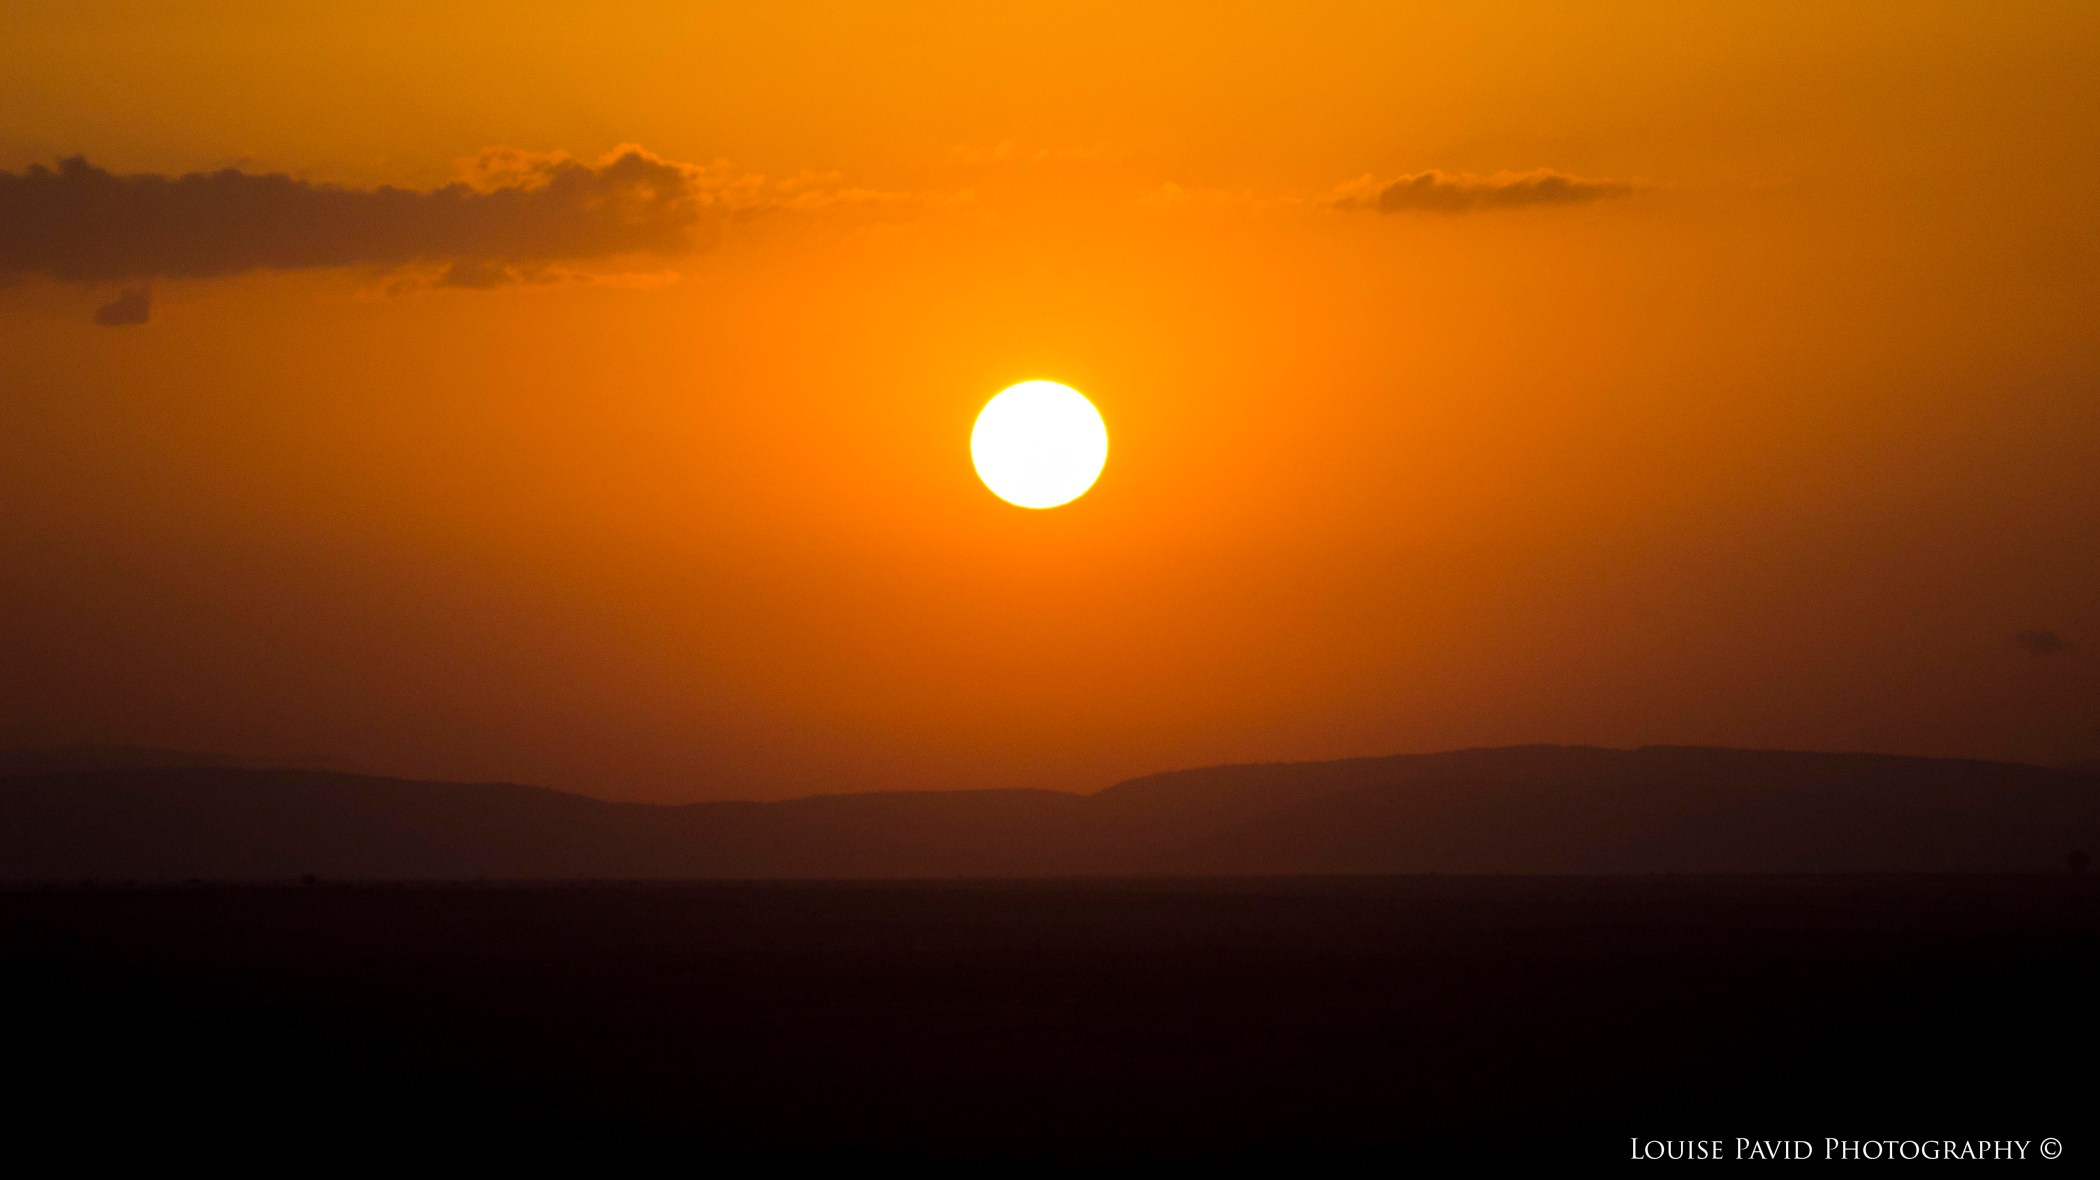 Sunrise over the Maasai Mara